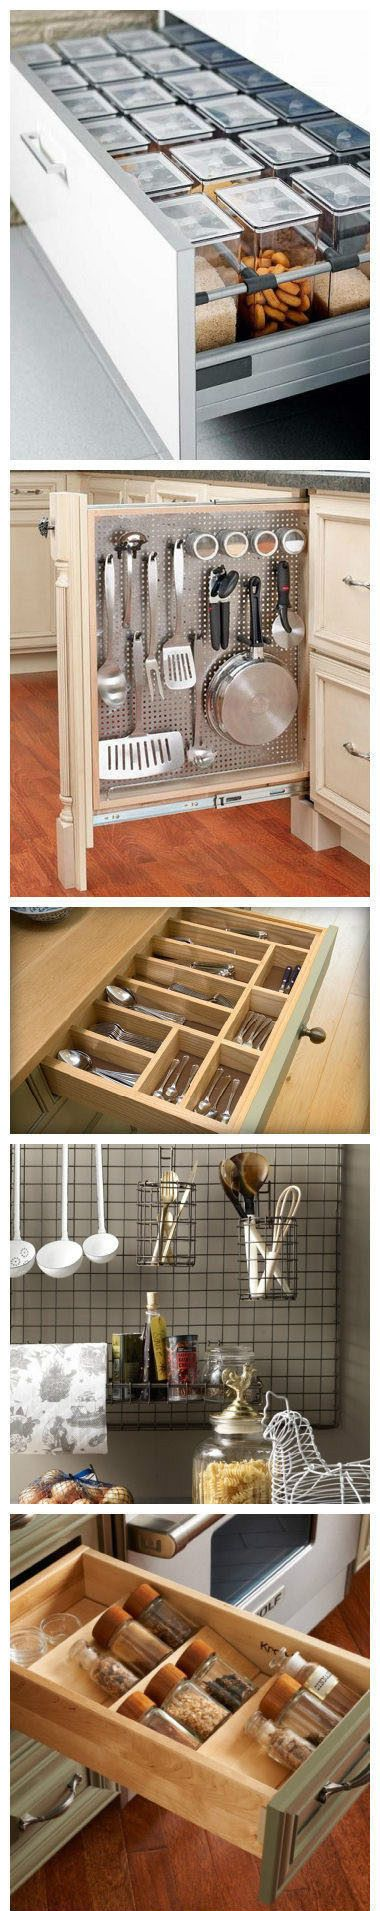 Oh I love the organisation here - how cool would it be to have such organised drawers where you can actually find something!